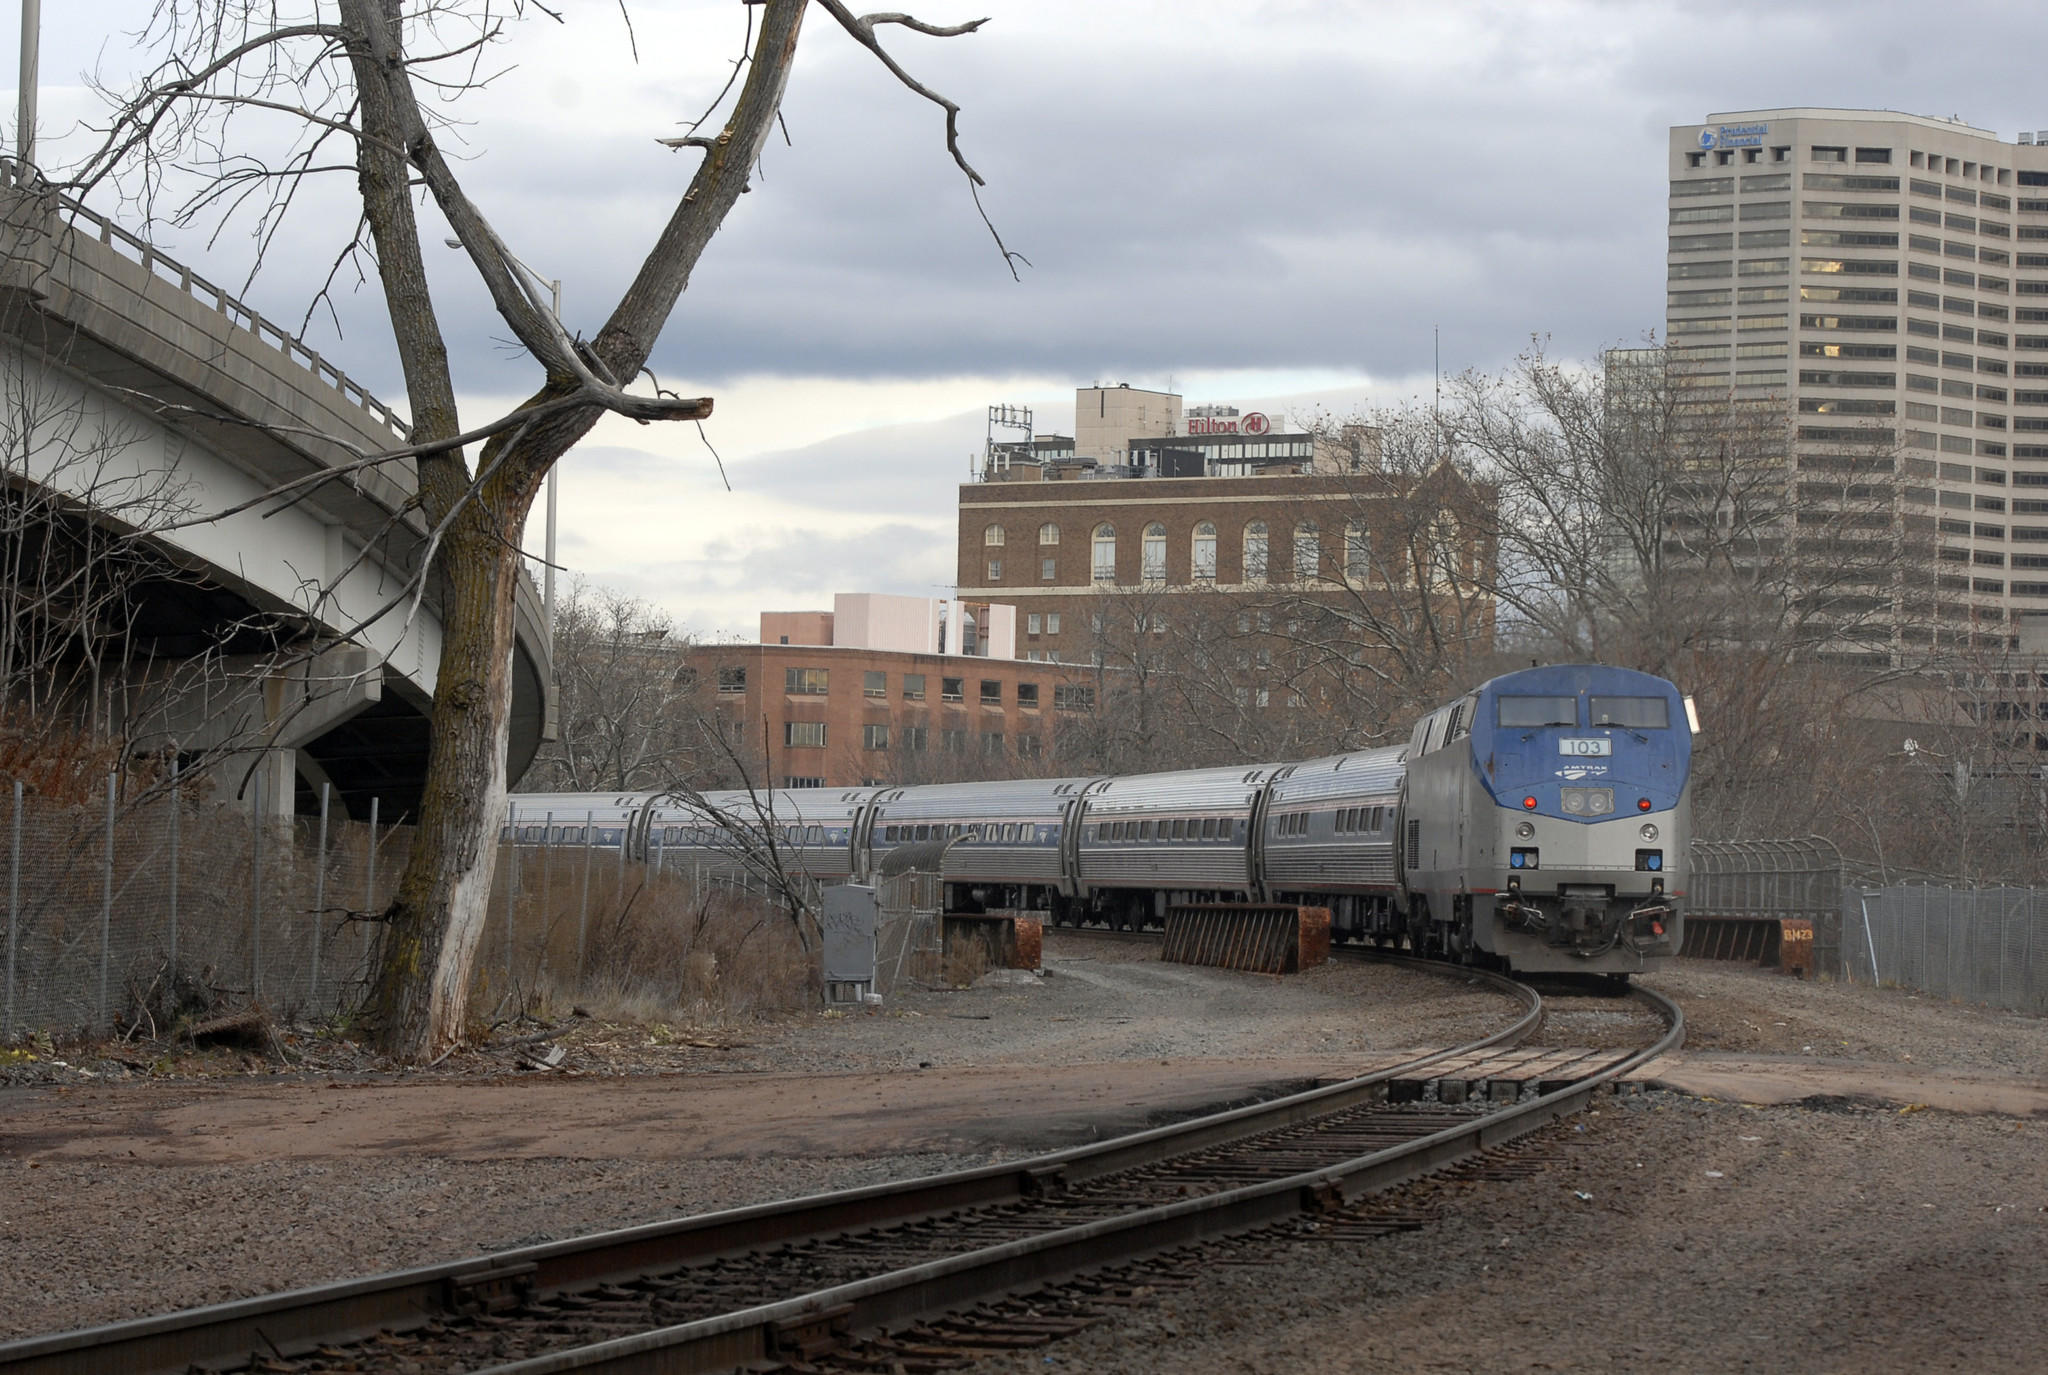 In a report issued in January 2014, transportation planners from the region said they anticipate that relatively fast, commuter-style rail service could begin on the stretch between New Haven and Springfield by late 2016.